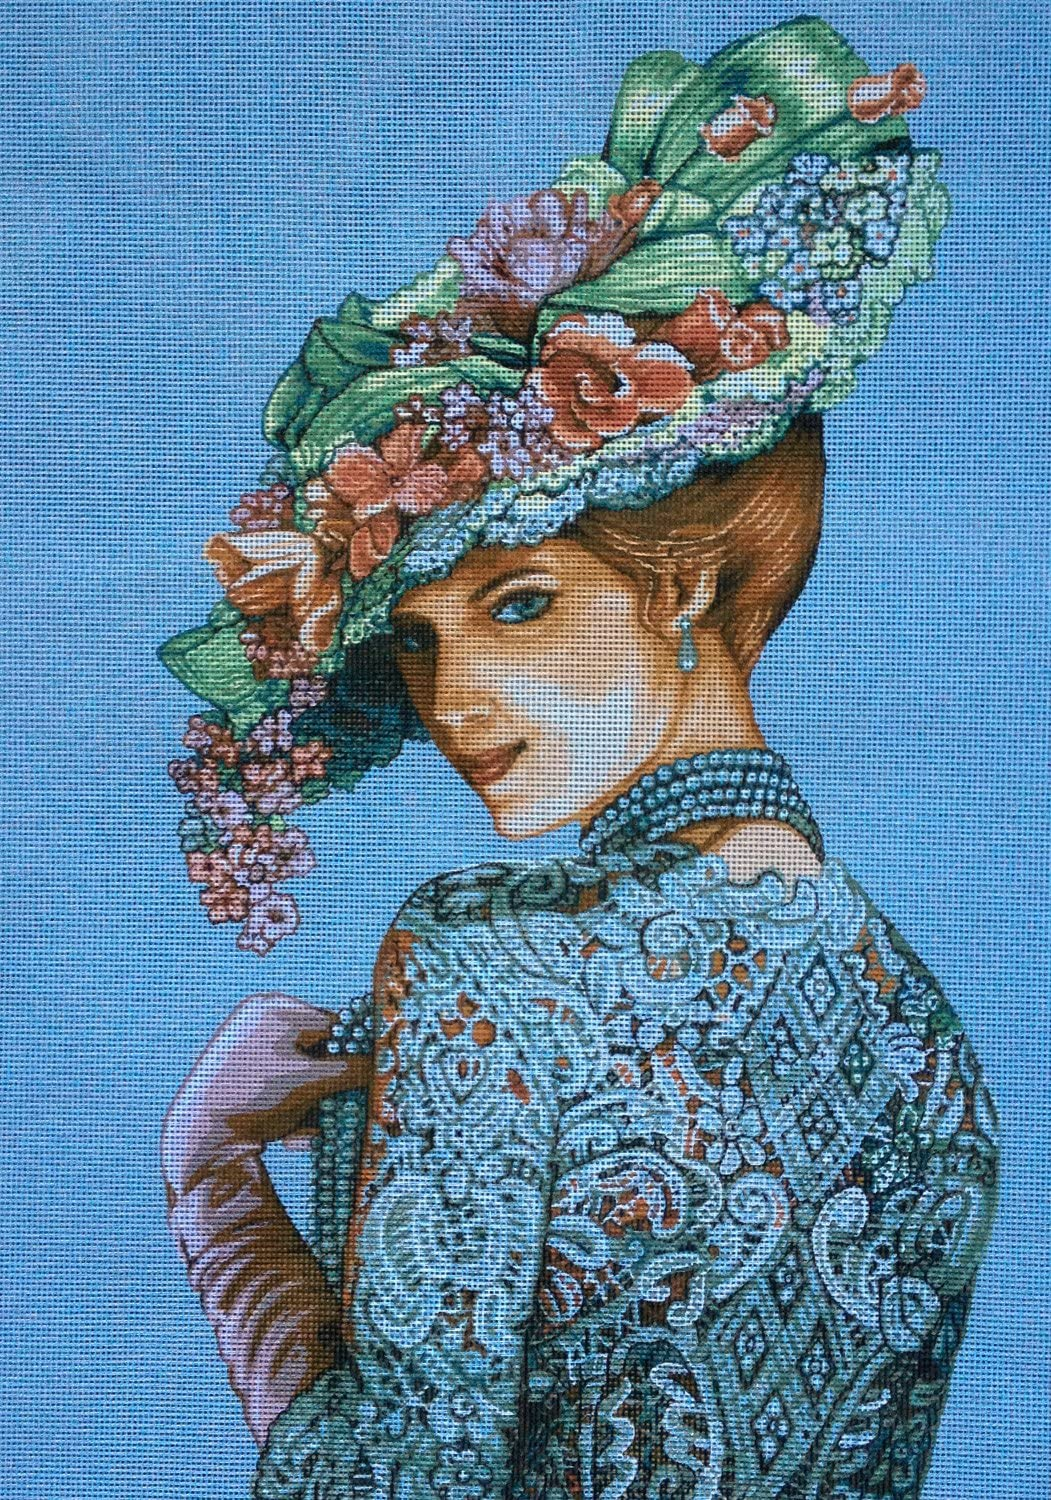 35x50cm. Printed Canvas 507 Hudemas Needlepoint Kit Lady 13.8X19.7